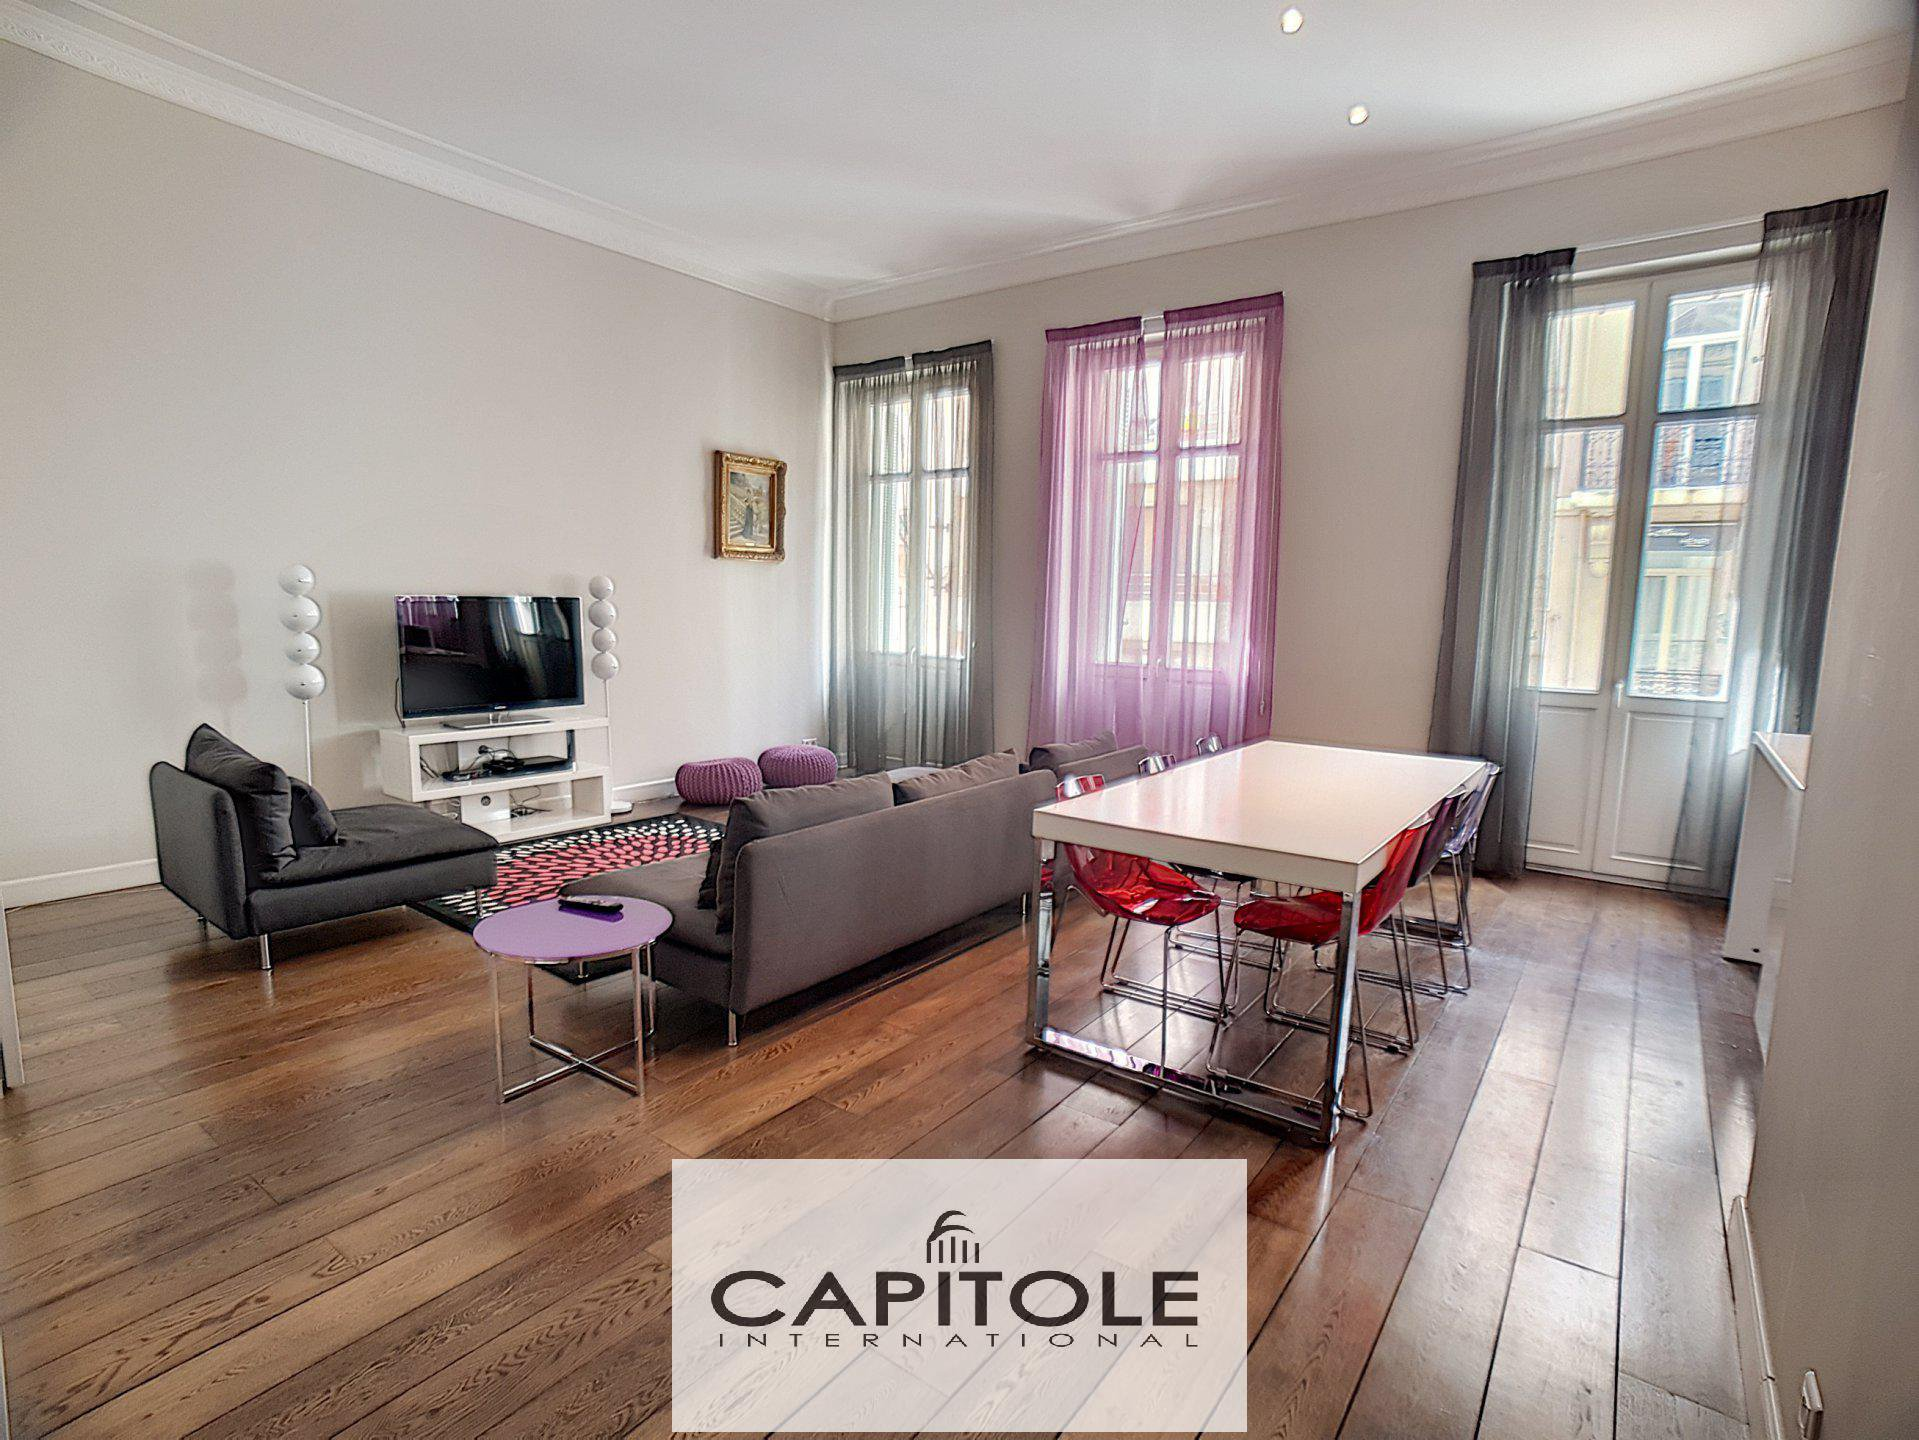 Cannes center, rue d'Antibes apartment 2 bedrooms 85 sqm south